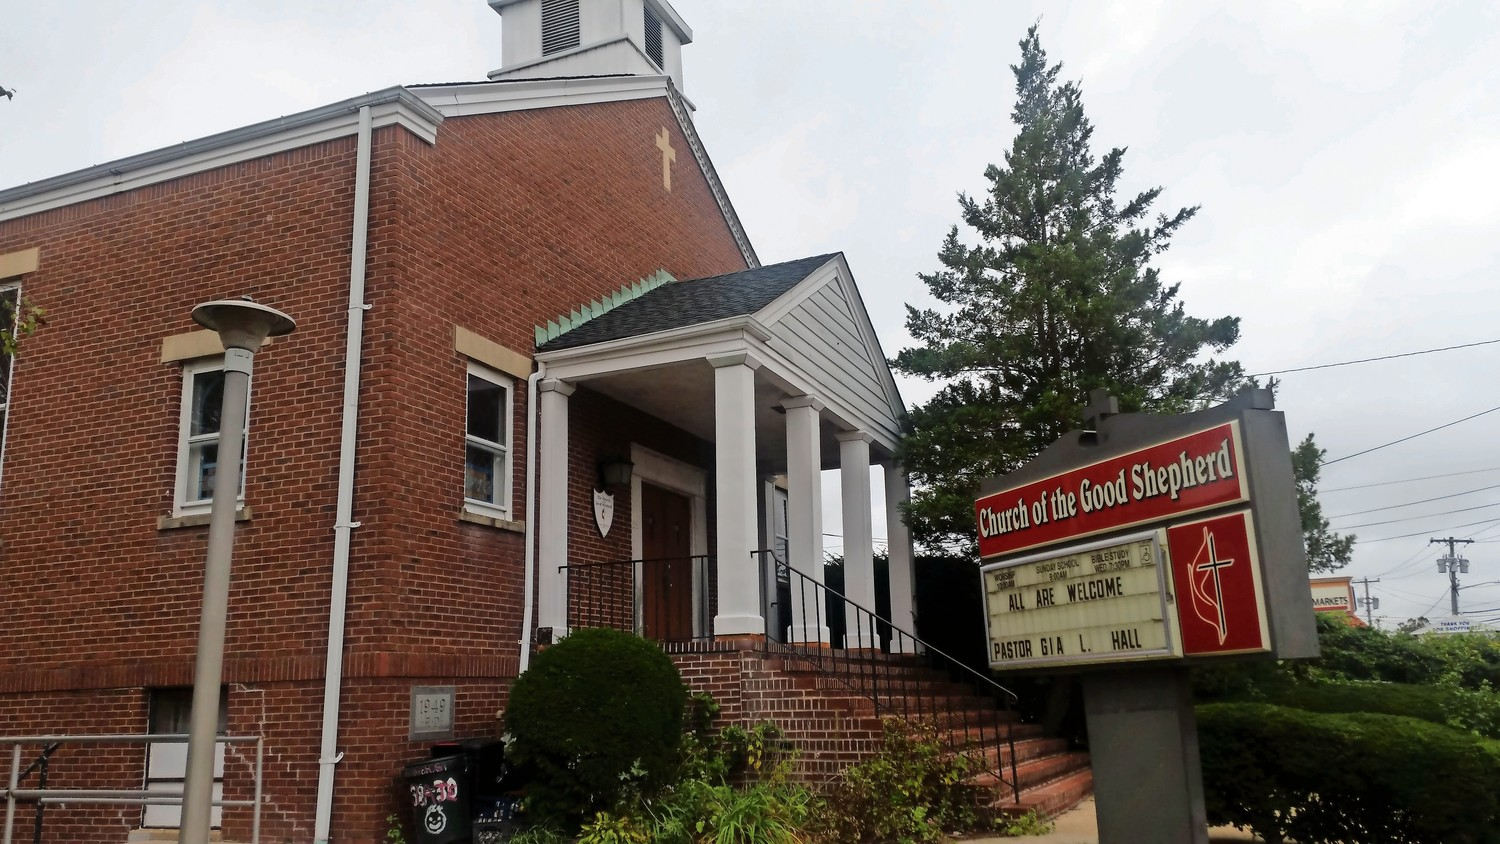 The Long Island Alliance of Churches' headquarters will be at the Church of the Good Shepherd United Methodist in West Hempstead.